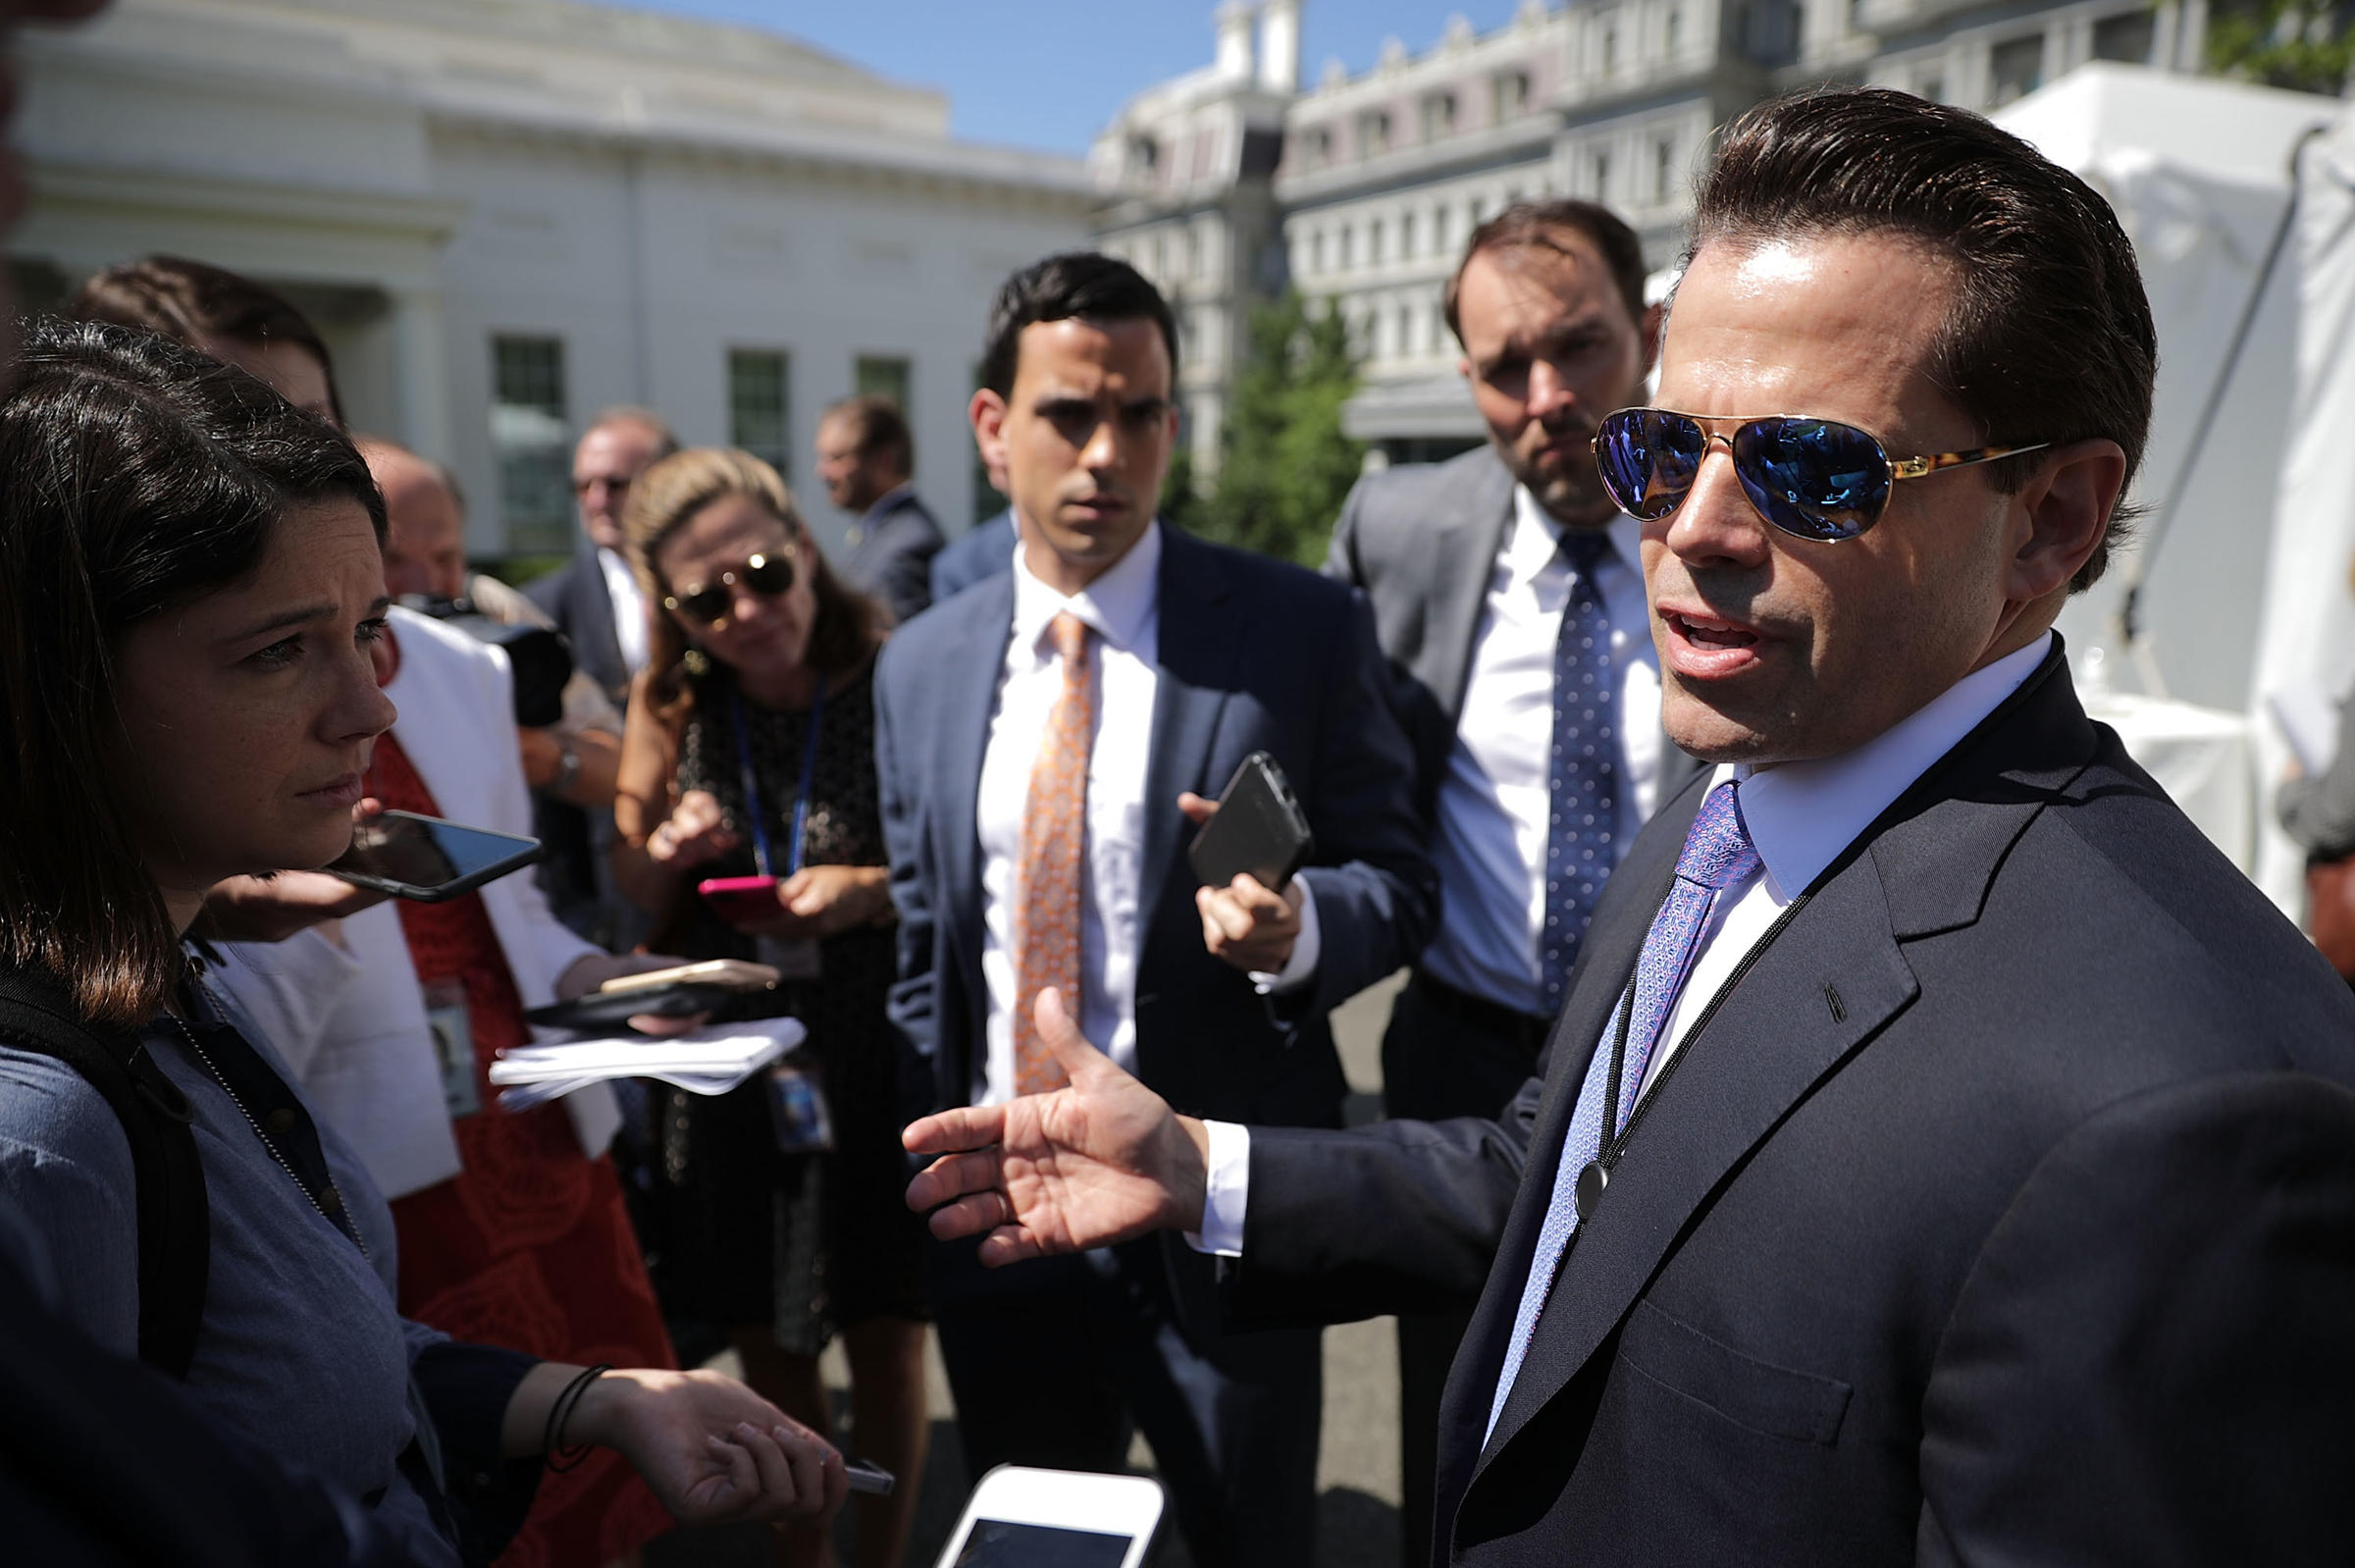 Anthony Scaramucci removed from White House Communications role after just 10 days